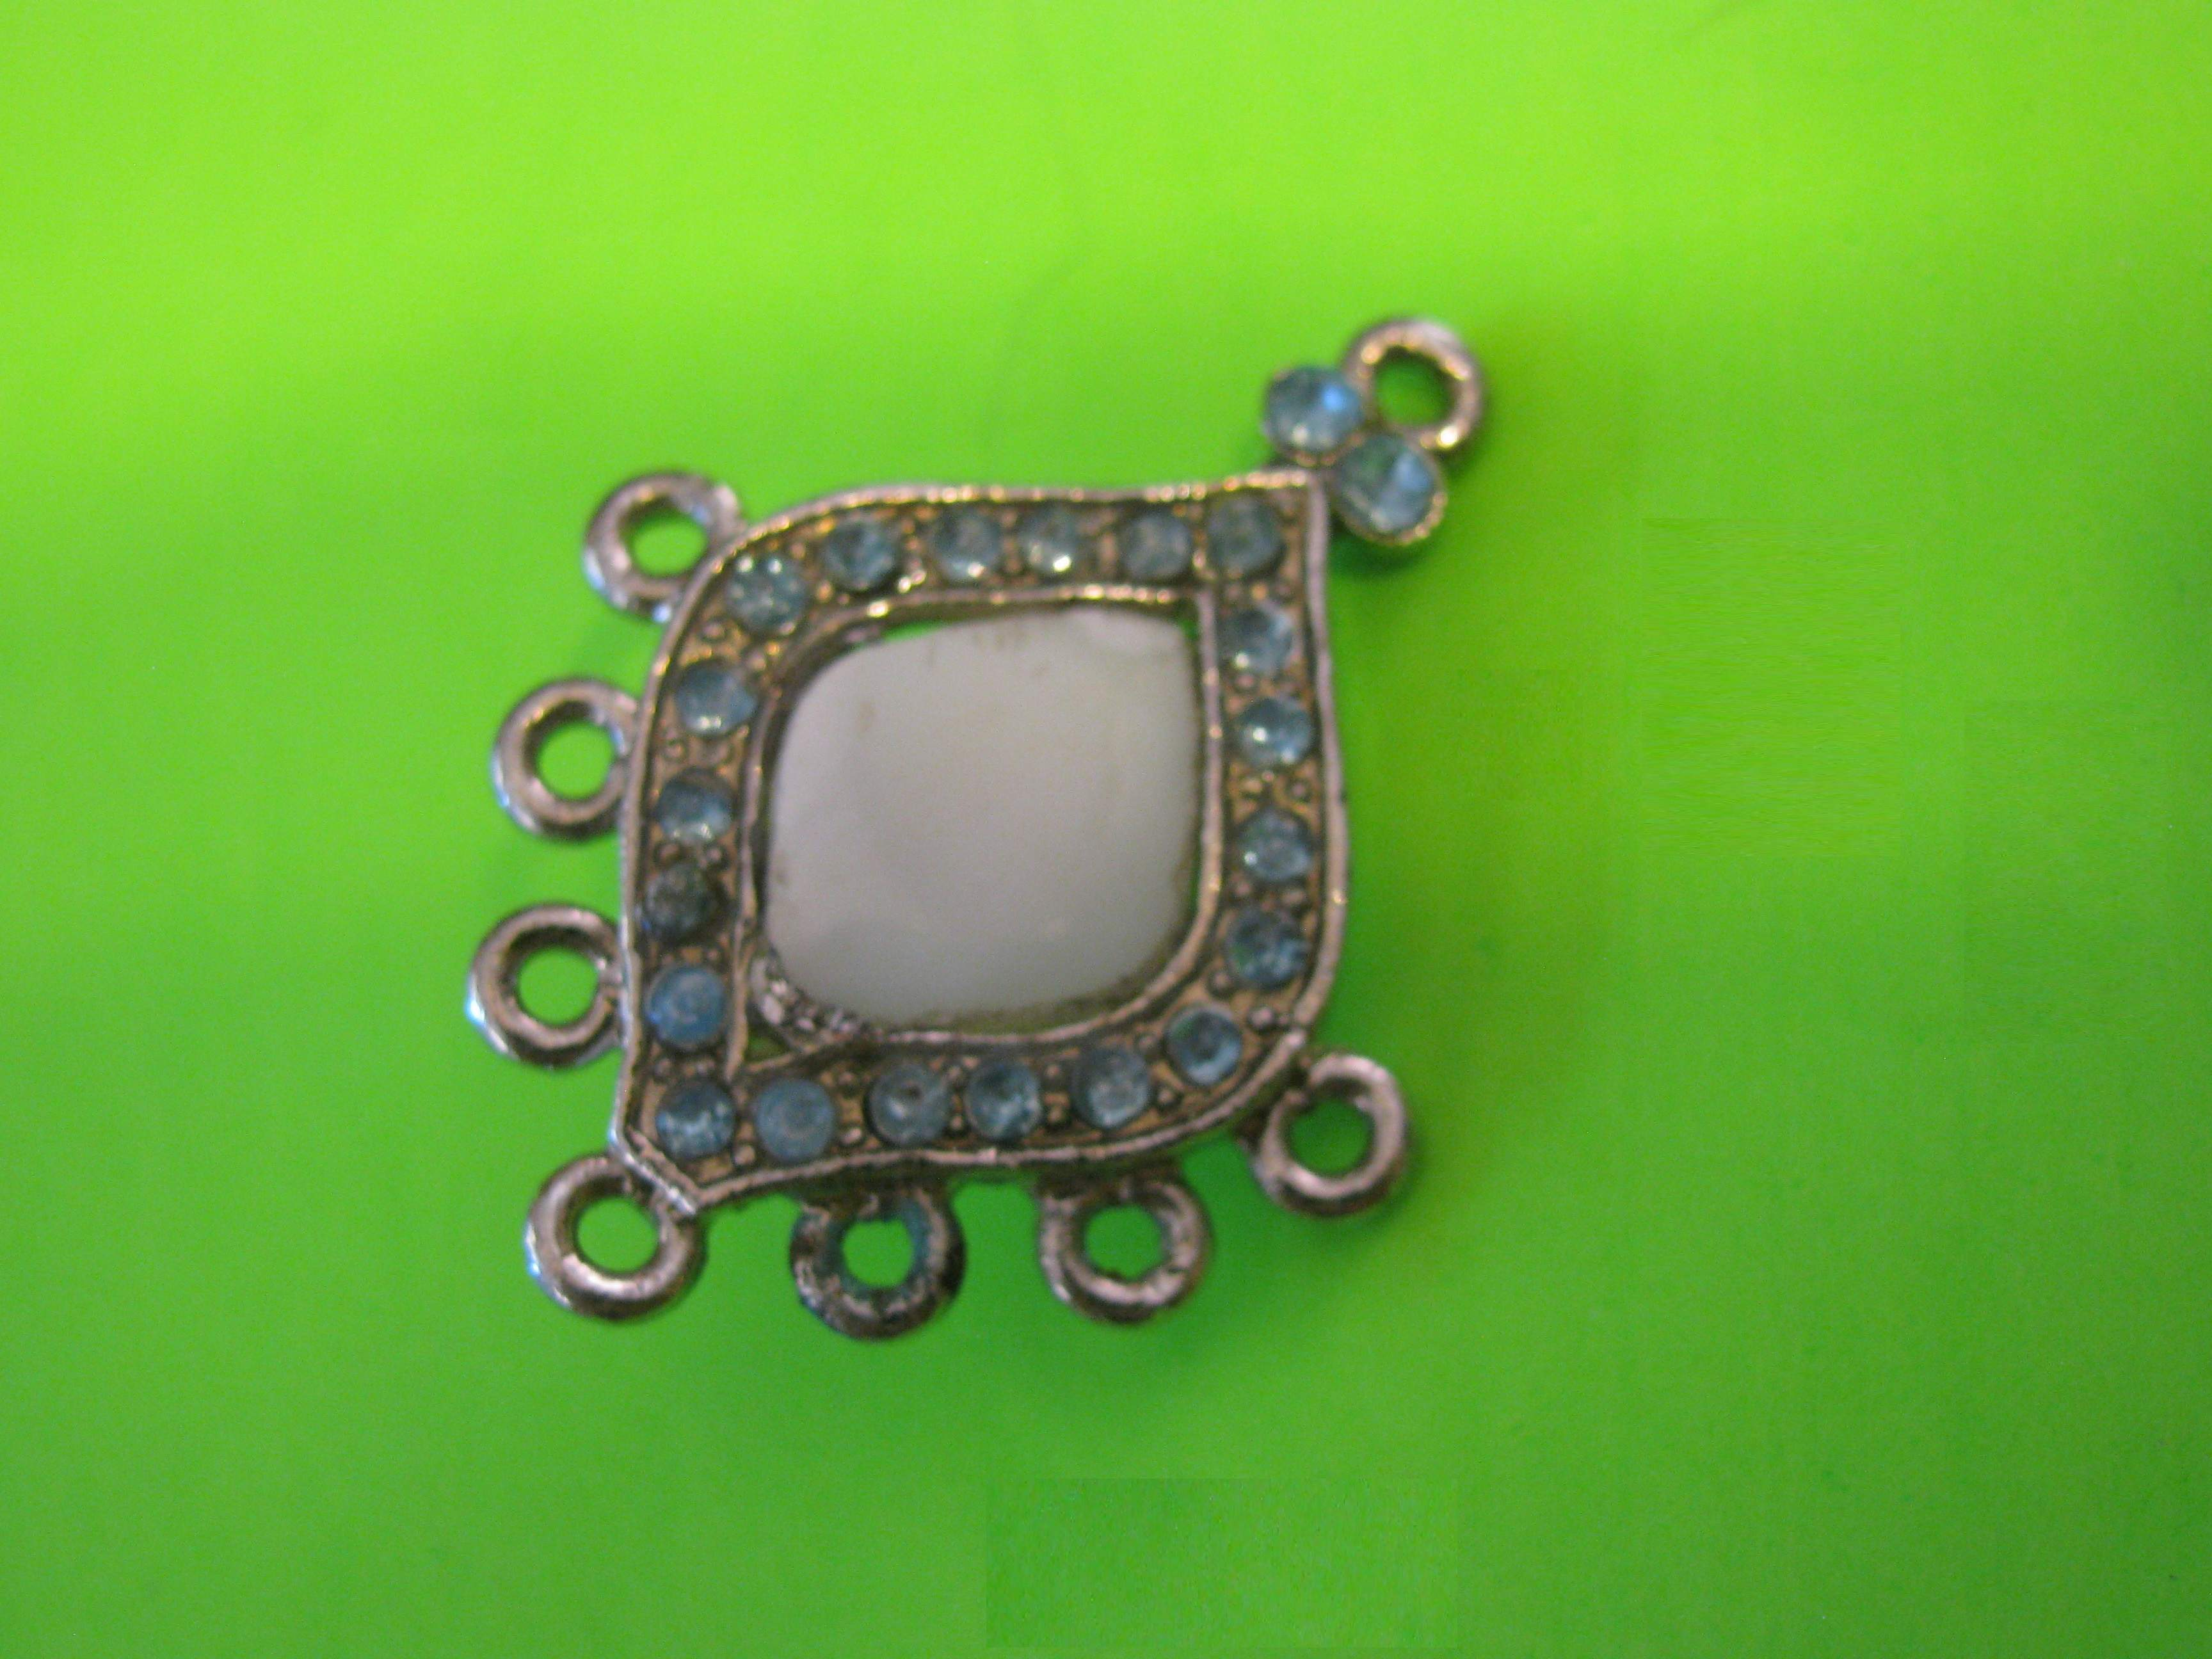 Vintage Teardrop Shaped Silver Metal Button with Mother of Pearl Center and Surrounded by Rhinestones – Brass Loop Shank